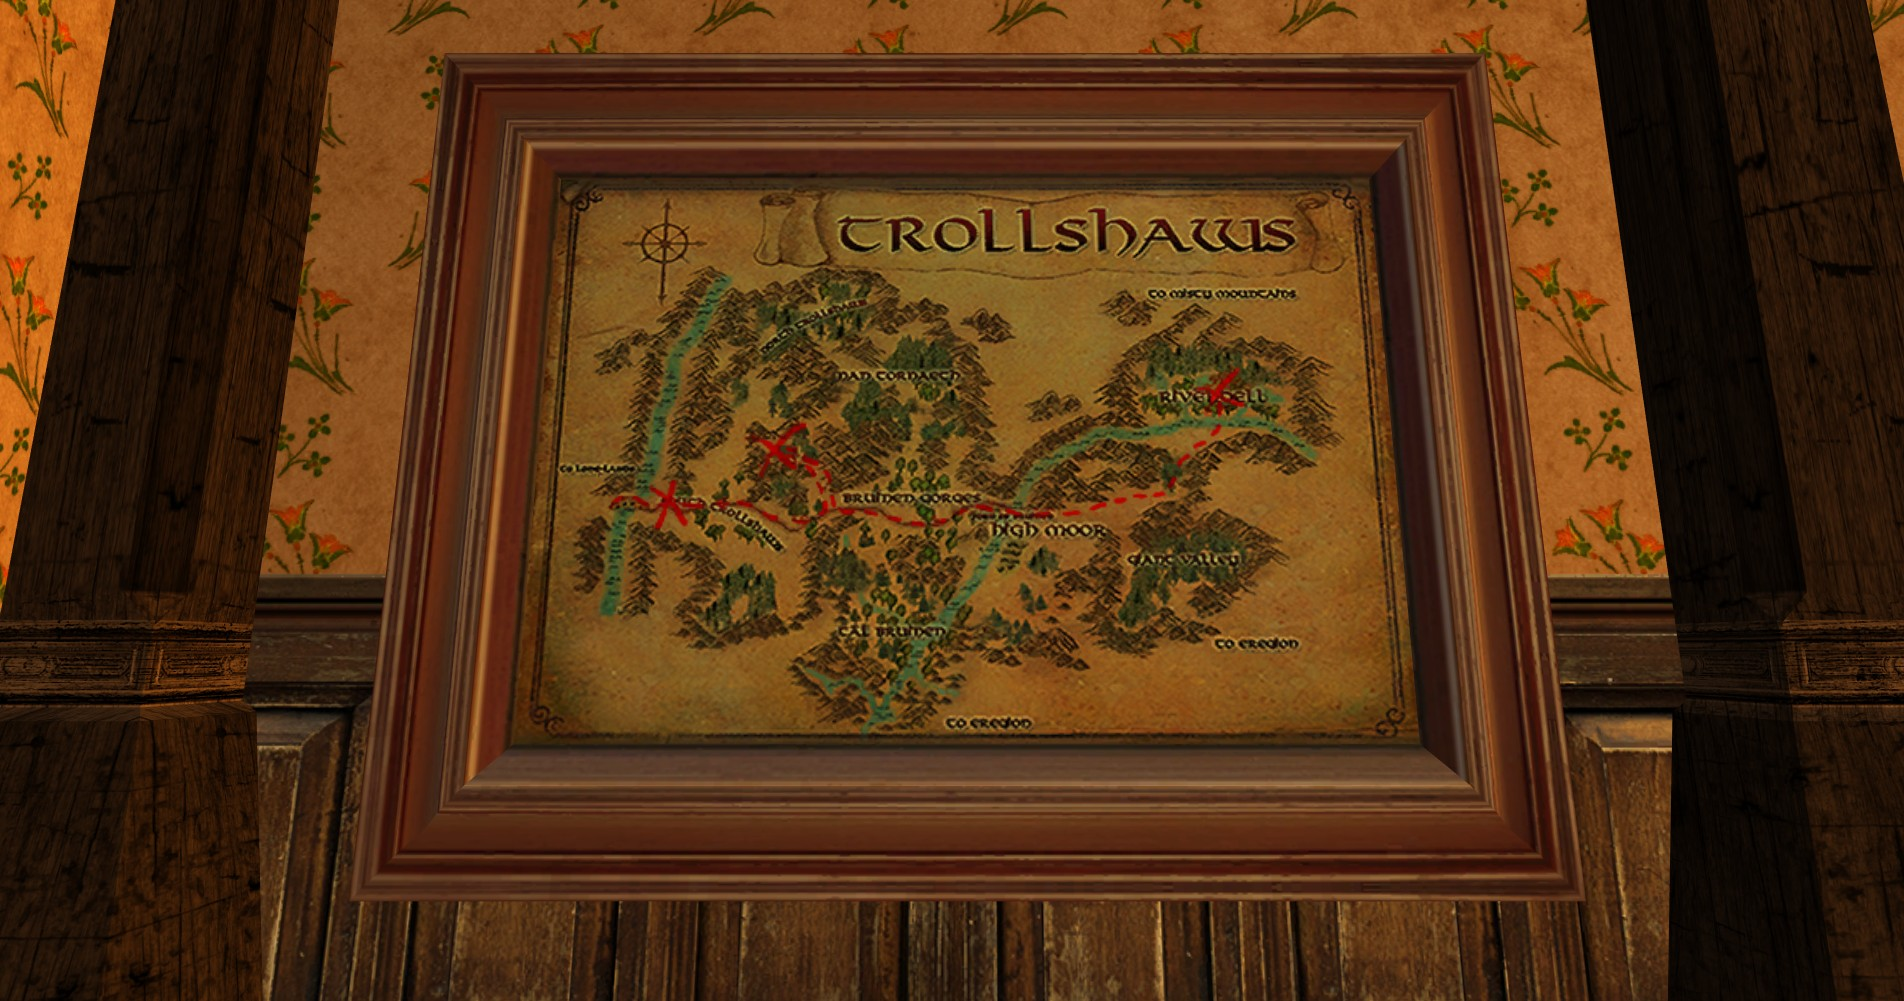 Large Map of Bingo in the Trollshaws